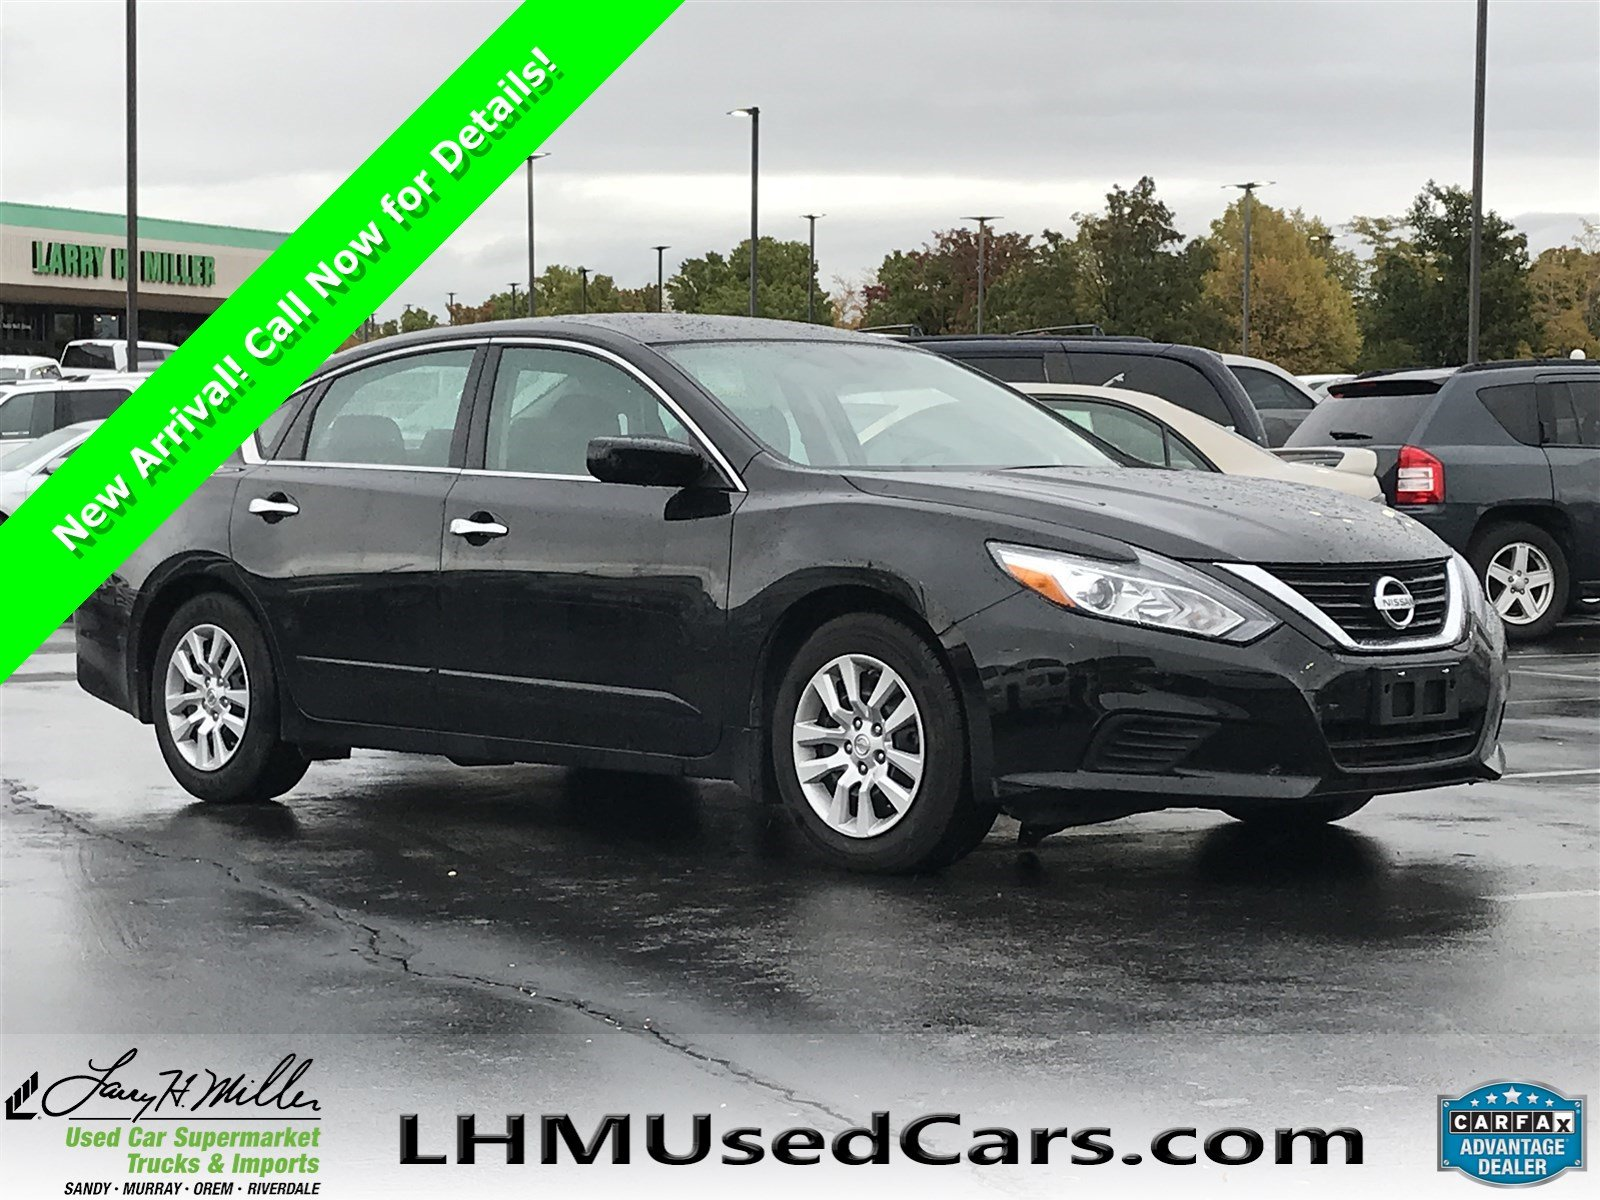 Carfax Used Cars Under 2500 Unique Pre Owned 2017 Nissan Altima 2 5 S 4dr Car In orem R4097